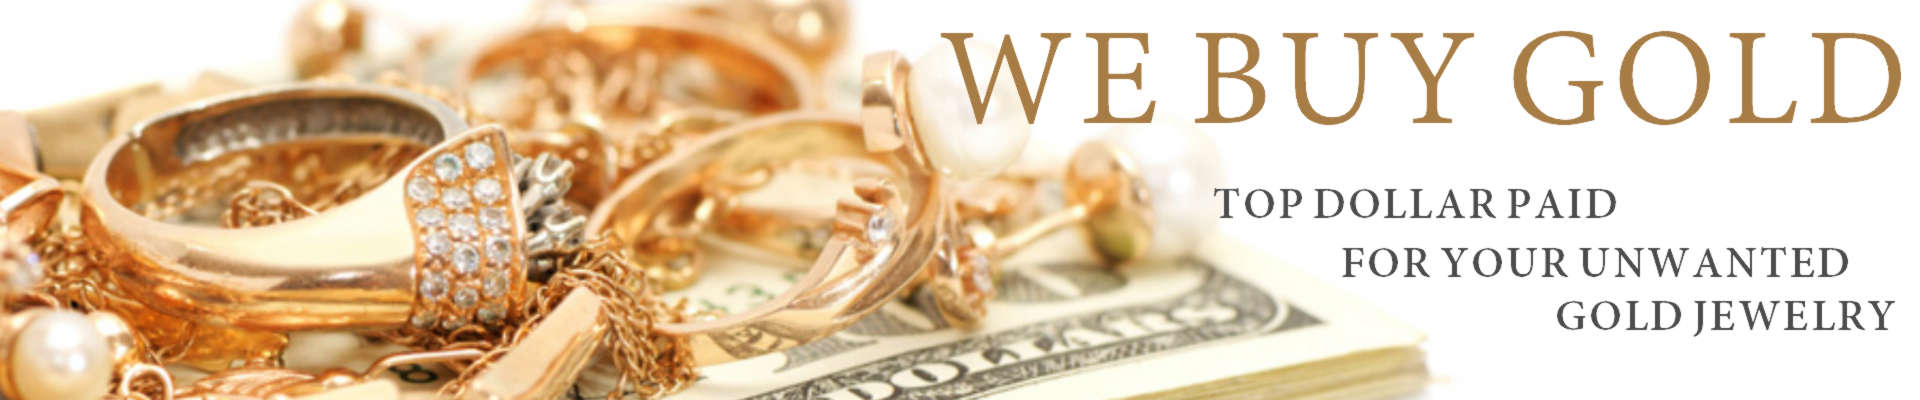 Cash for Gold Los Angeles Buy Sell Loan on Gold